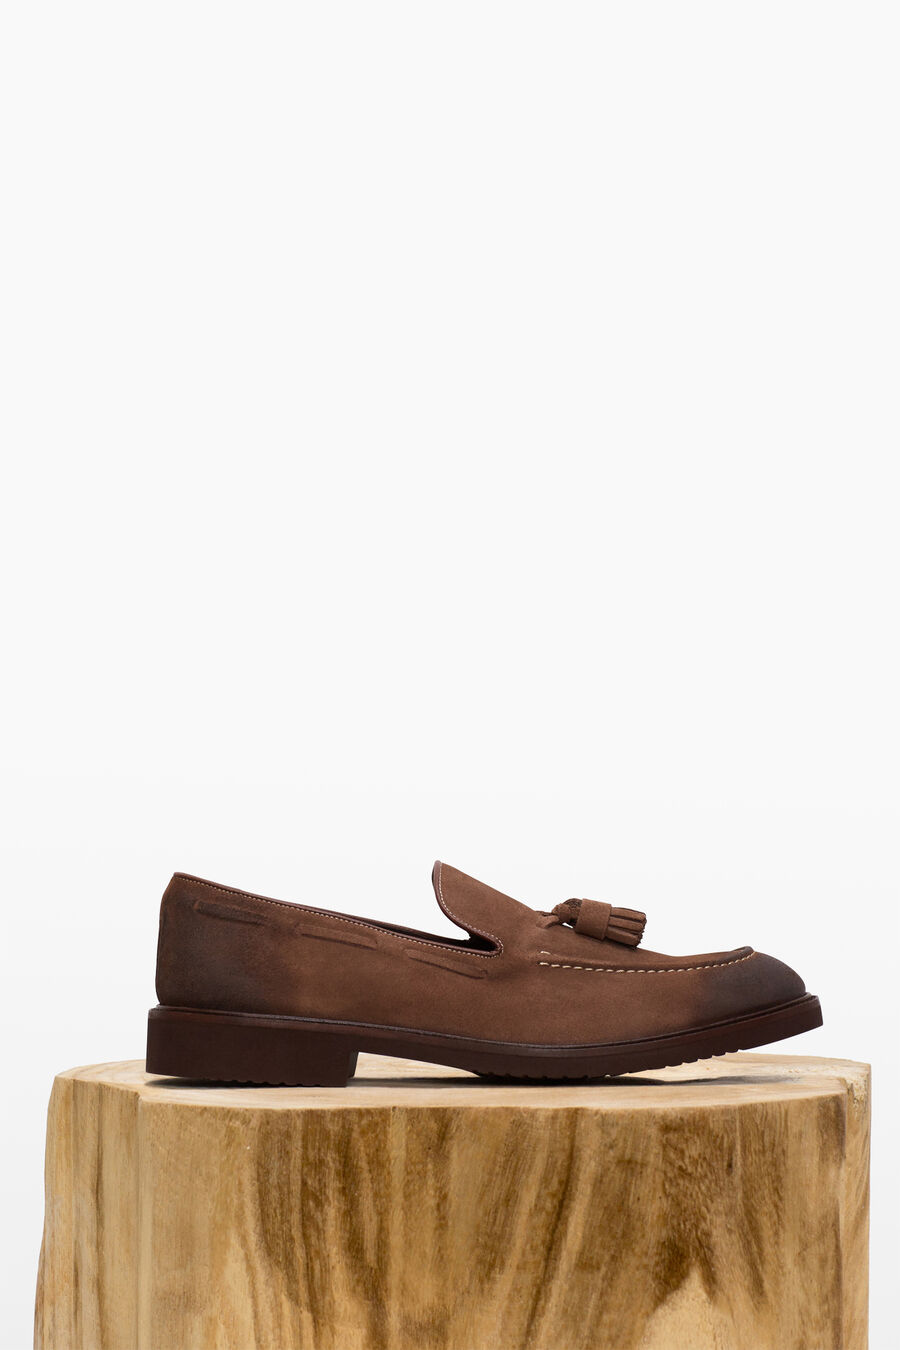 Split leather moccasin